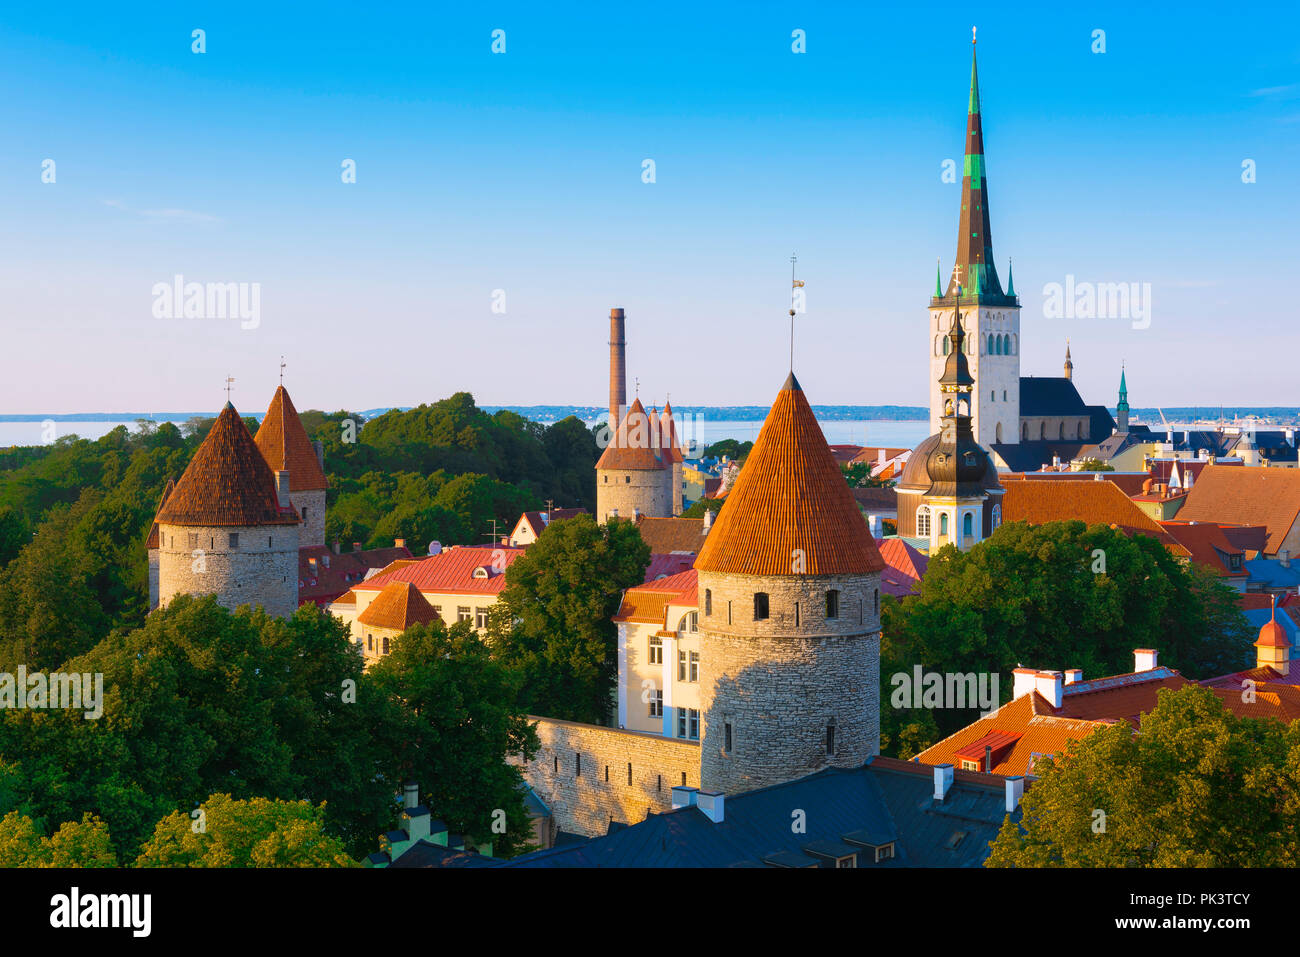 Tallinn skyline, view of the medieval Lower Town Wall and towers with St Olaf's Church in the distance, Tallinn, Estonia. Stock Photo